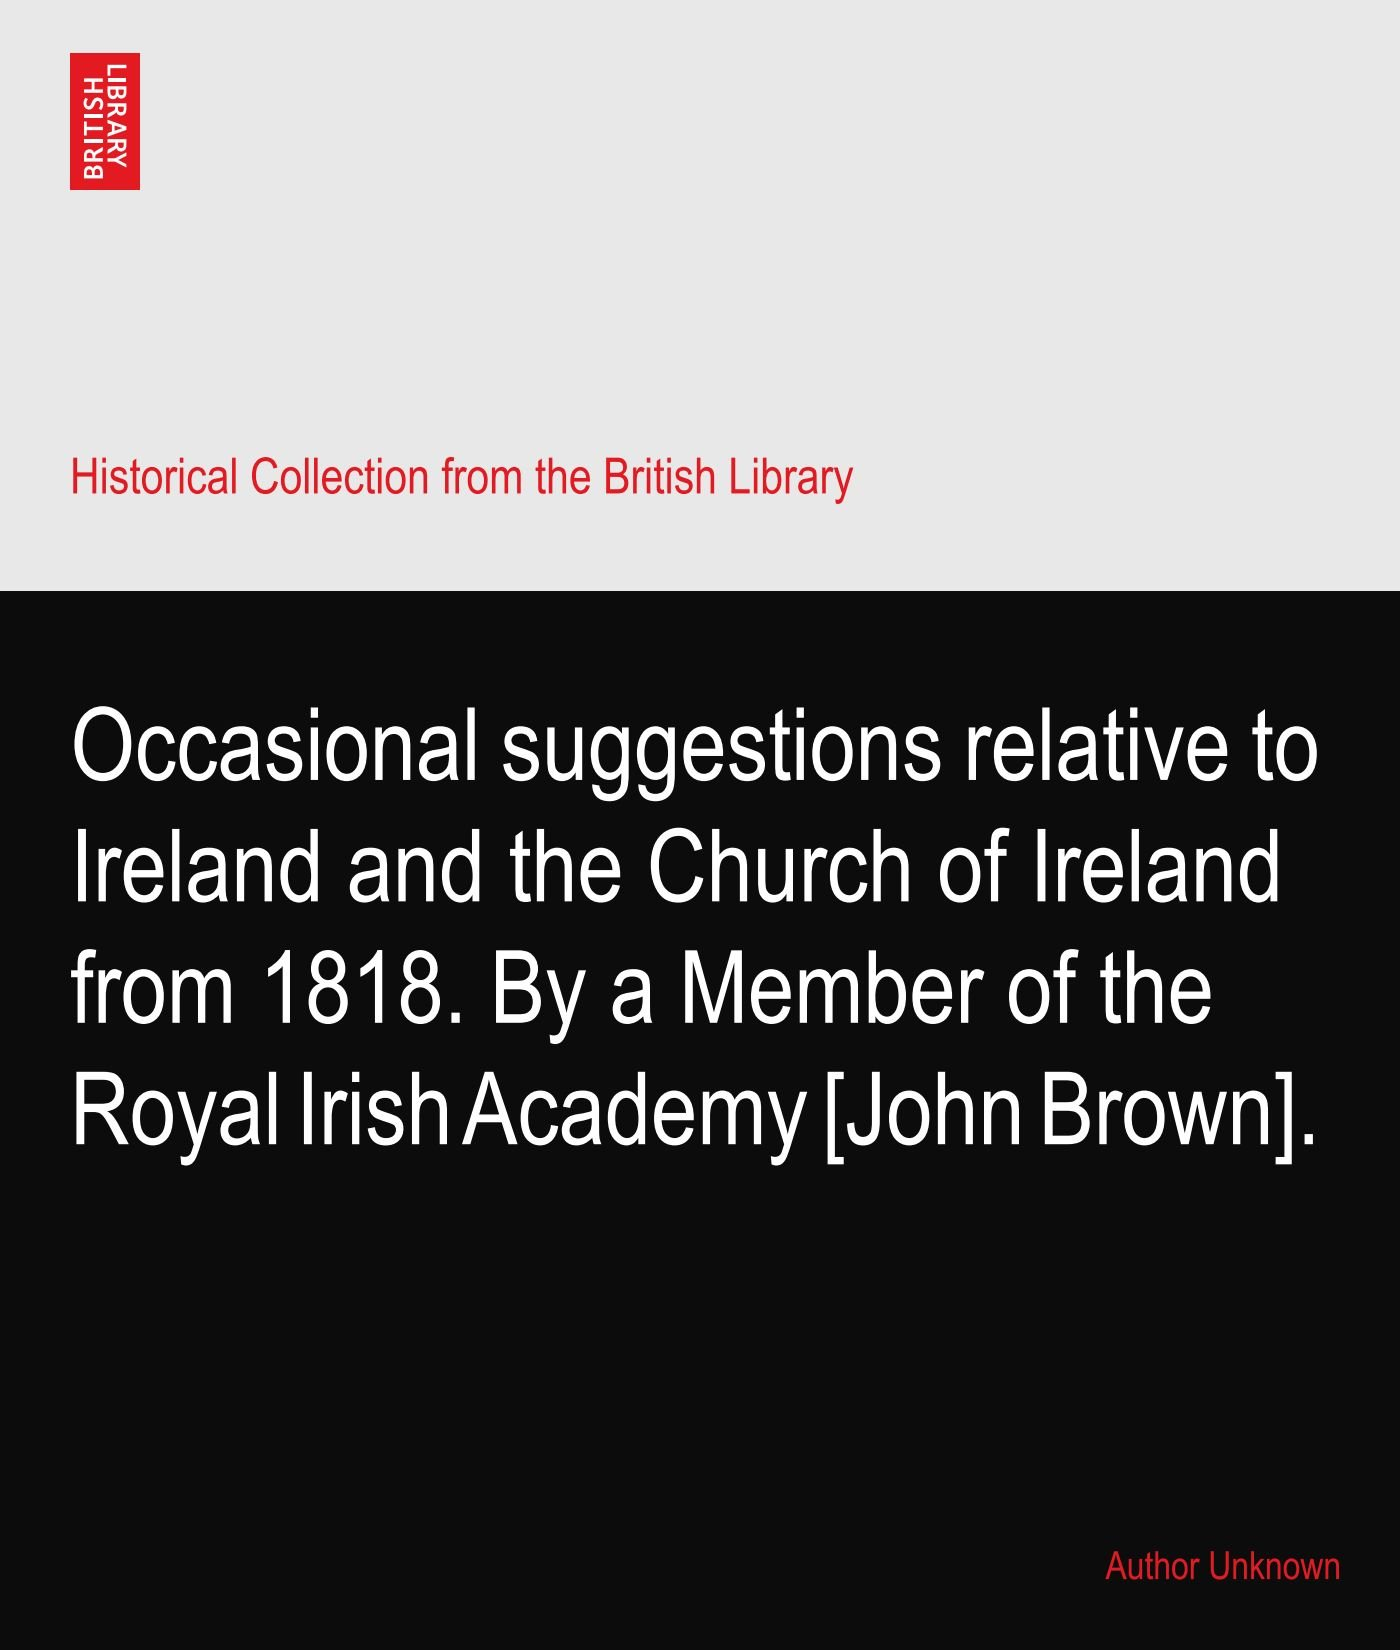 Occasional suggestions relative to Ireland and the Church of Ireland from 1818. By a Member of the Royal Irish Academy [John Brown]. ebook